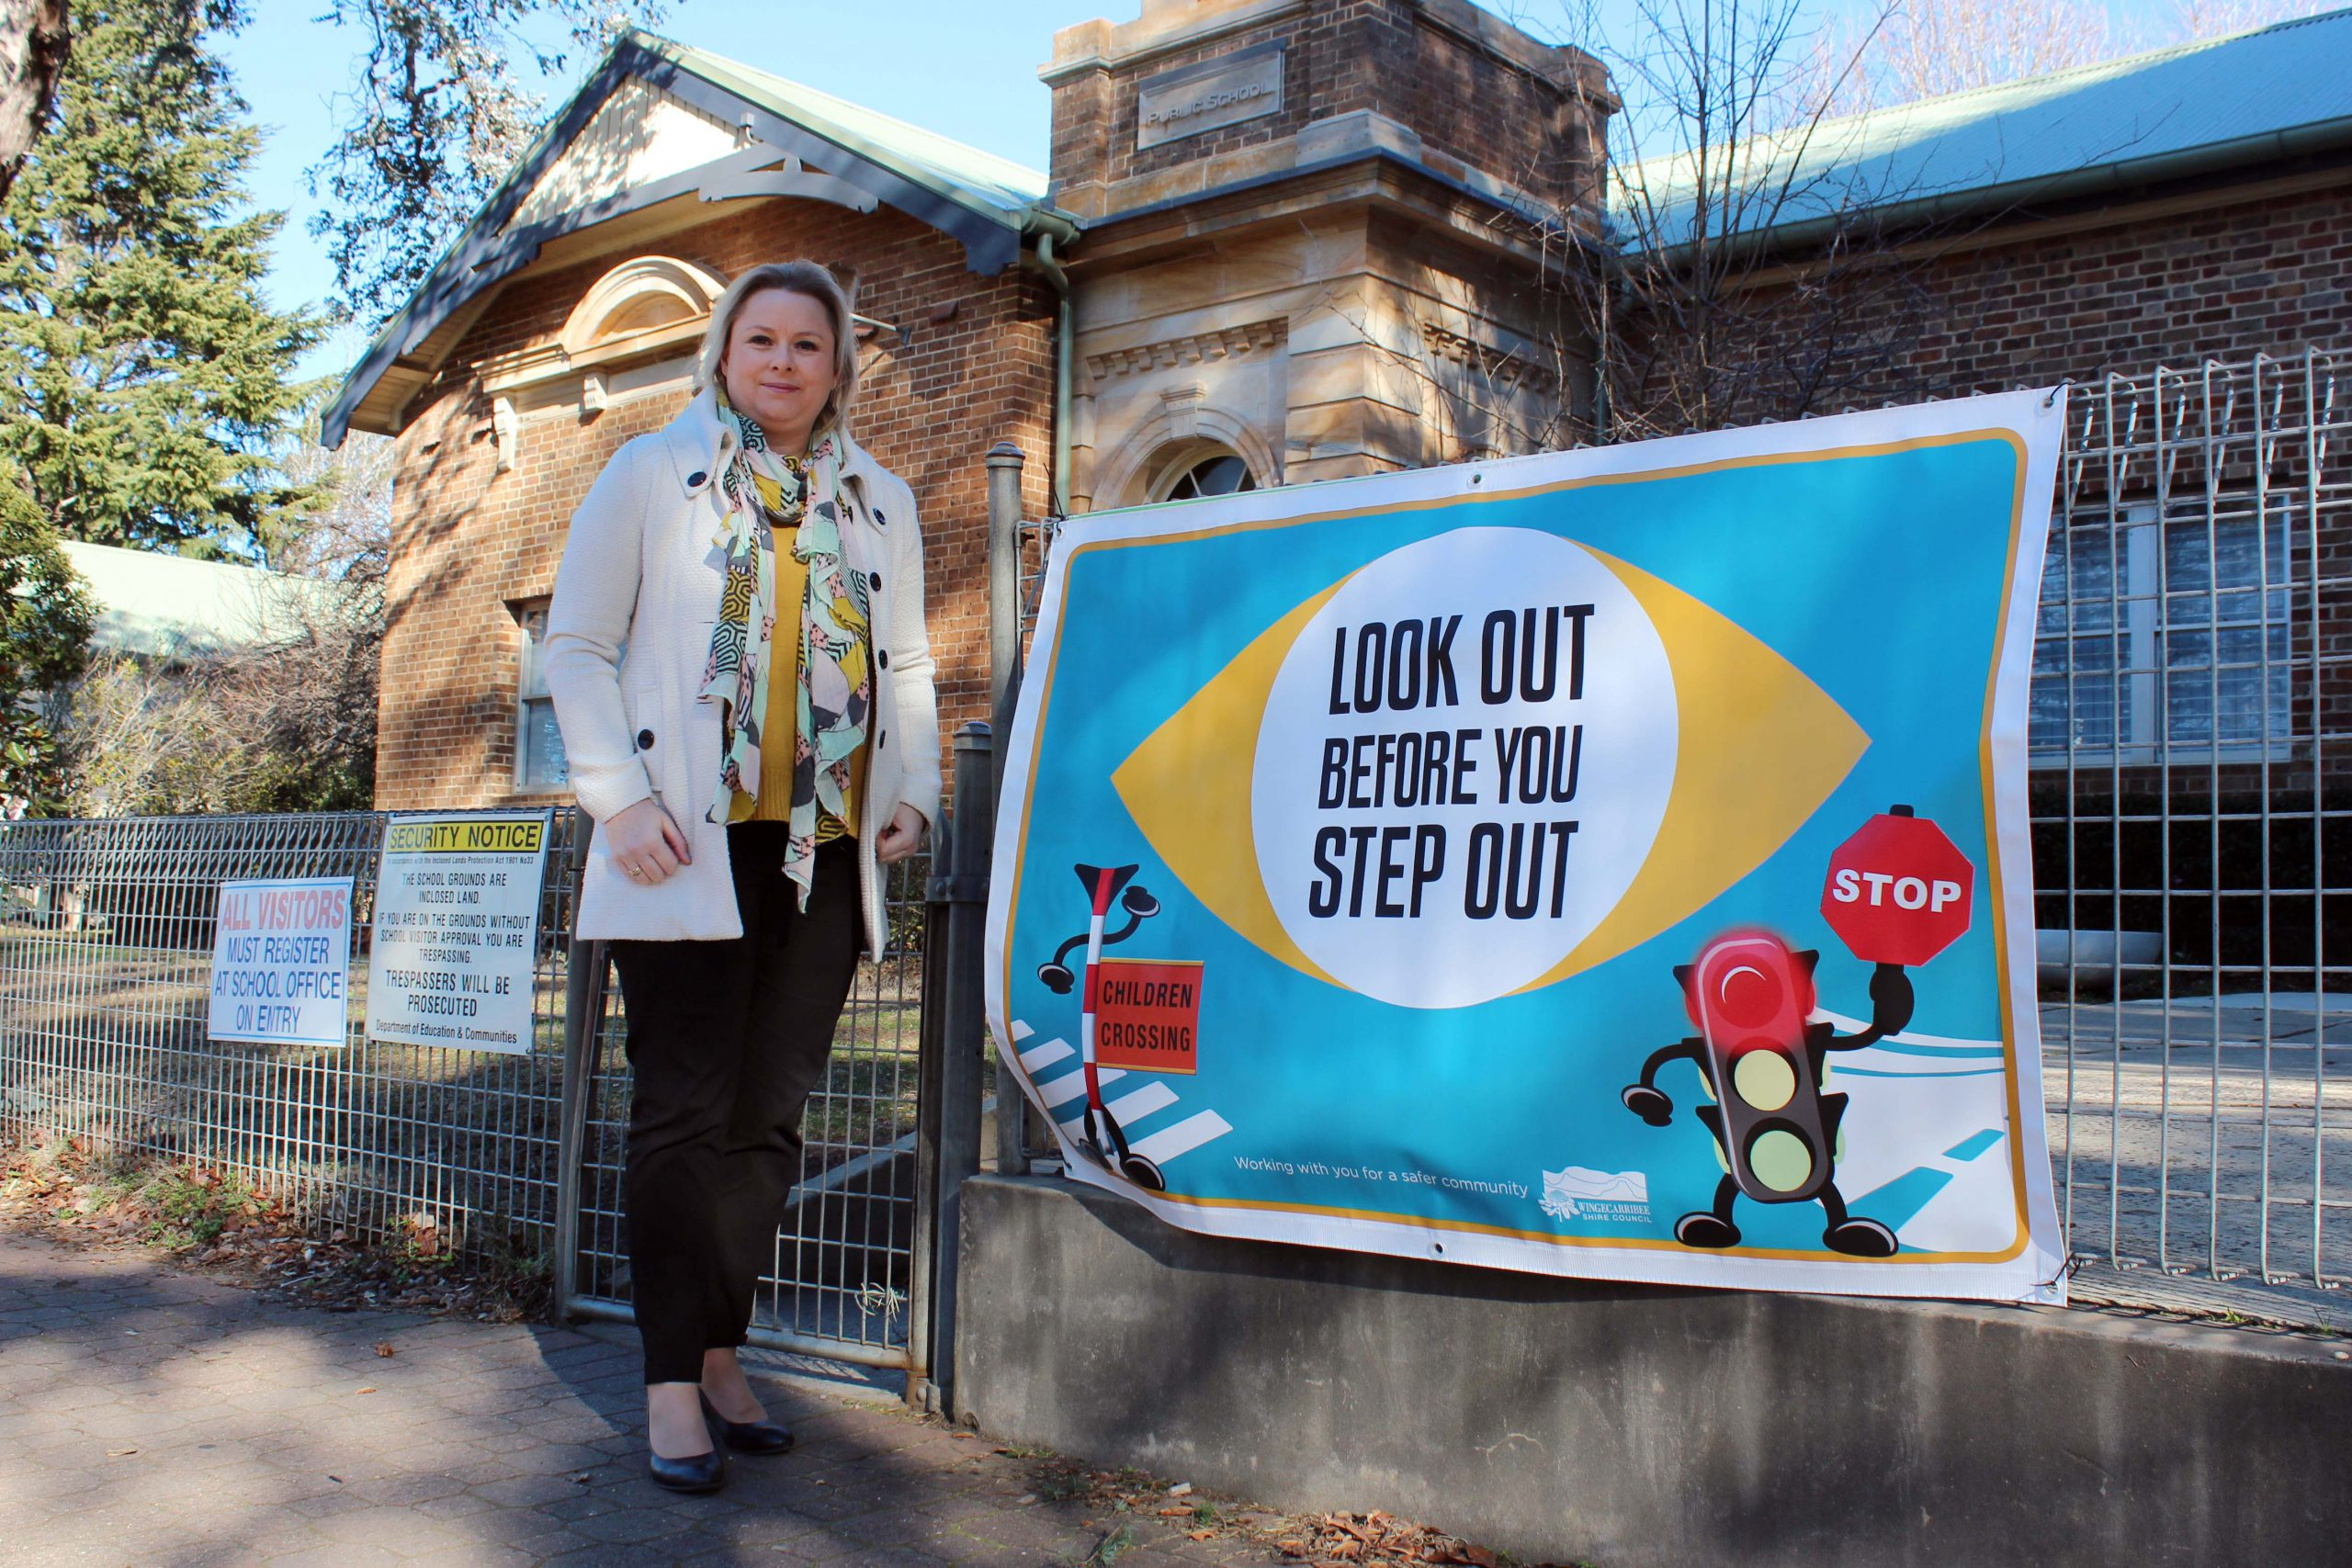 Road Safety Officer, Melanie Lausz, with the custom 'Look out before you step out' banner at Bowral Public School